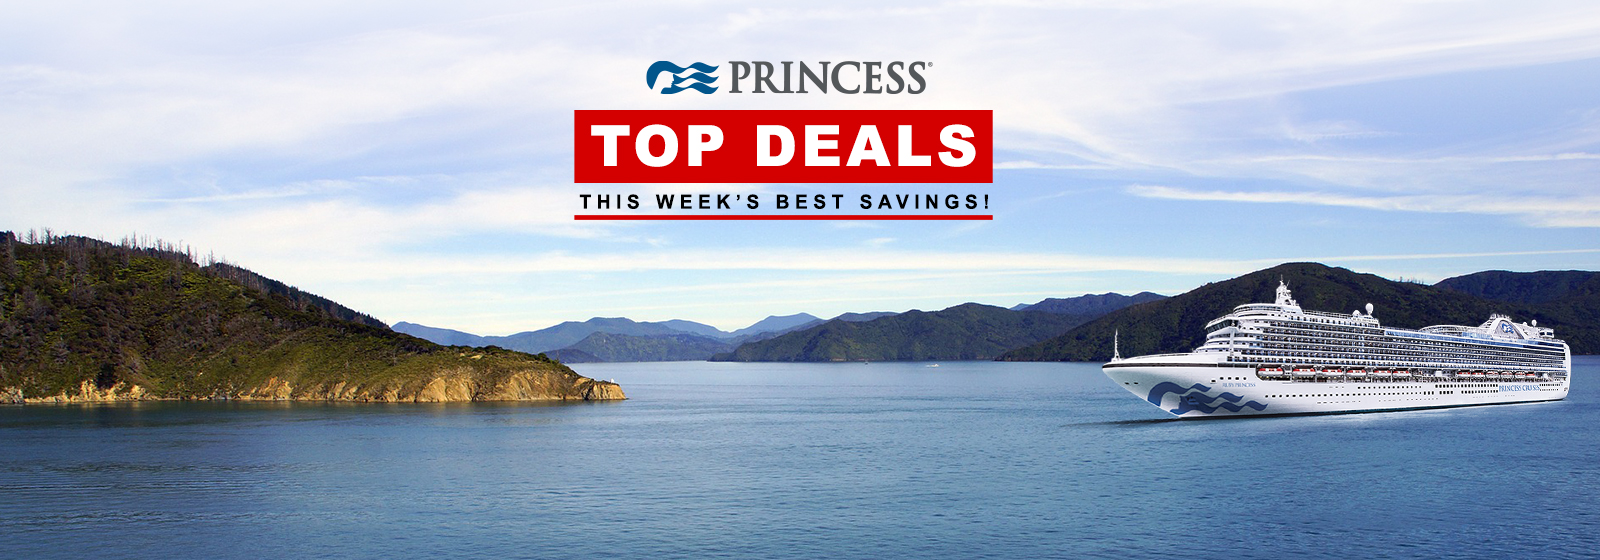 princess-topdeals-1